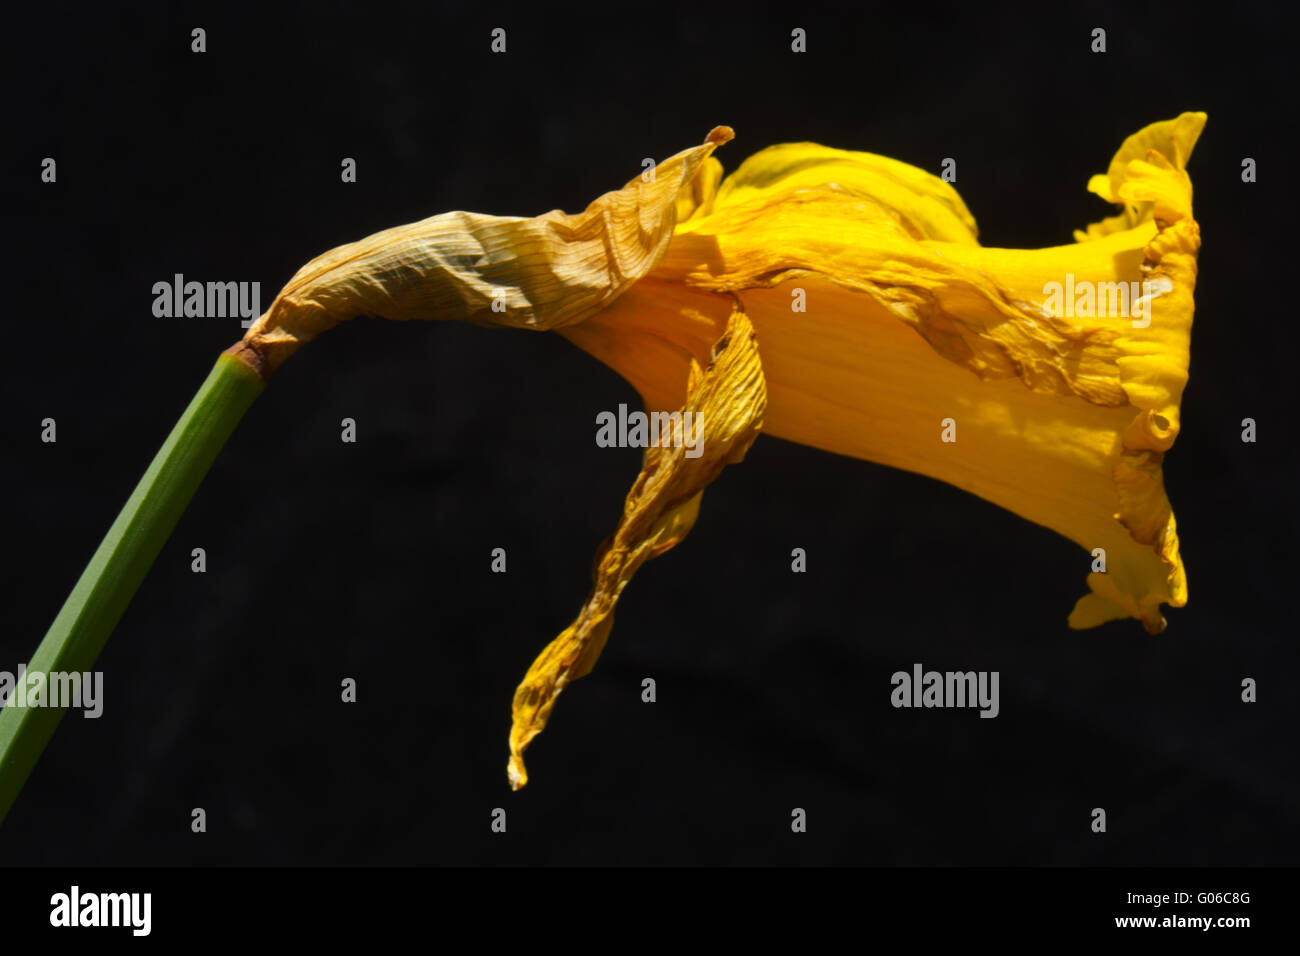 Daffodil Narcissus flower fading dead - Stock Image